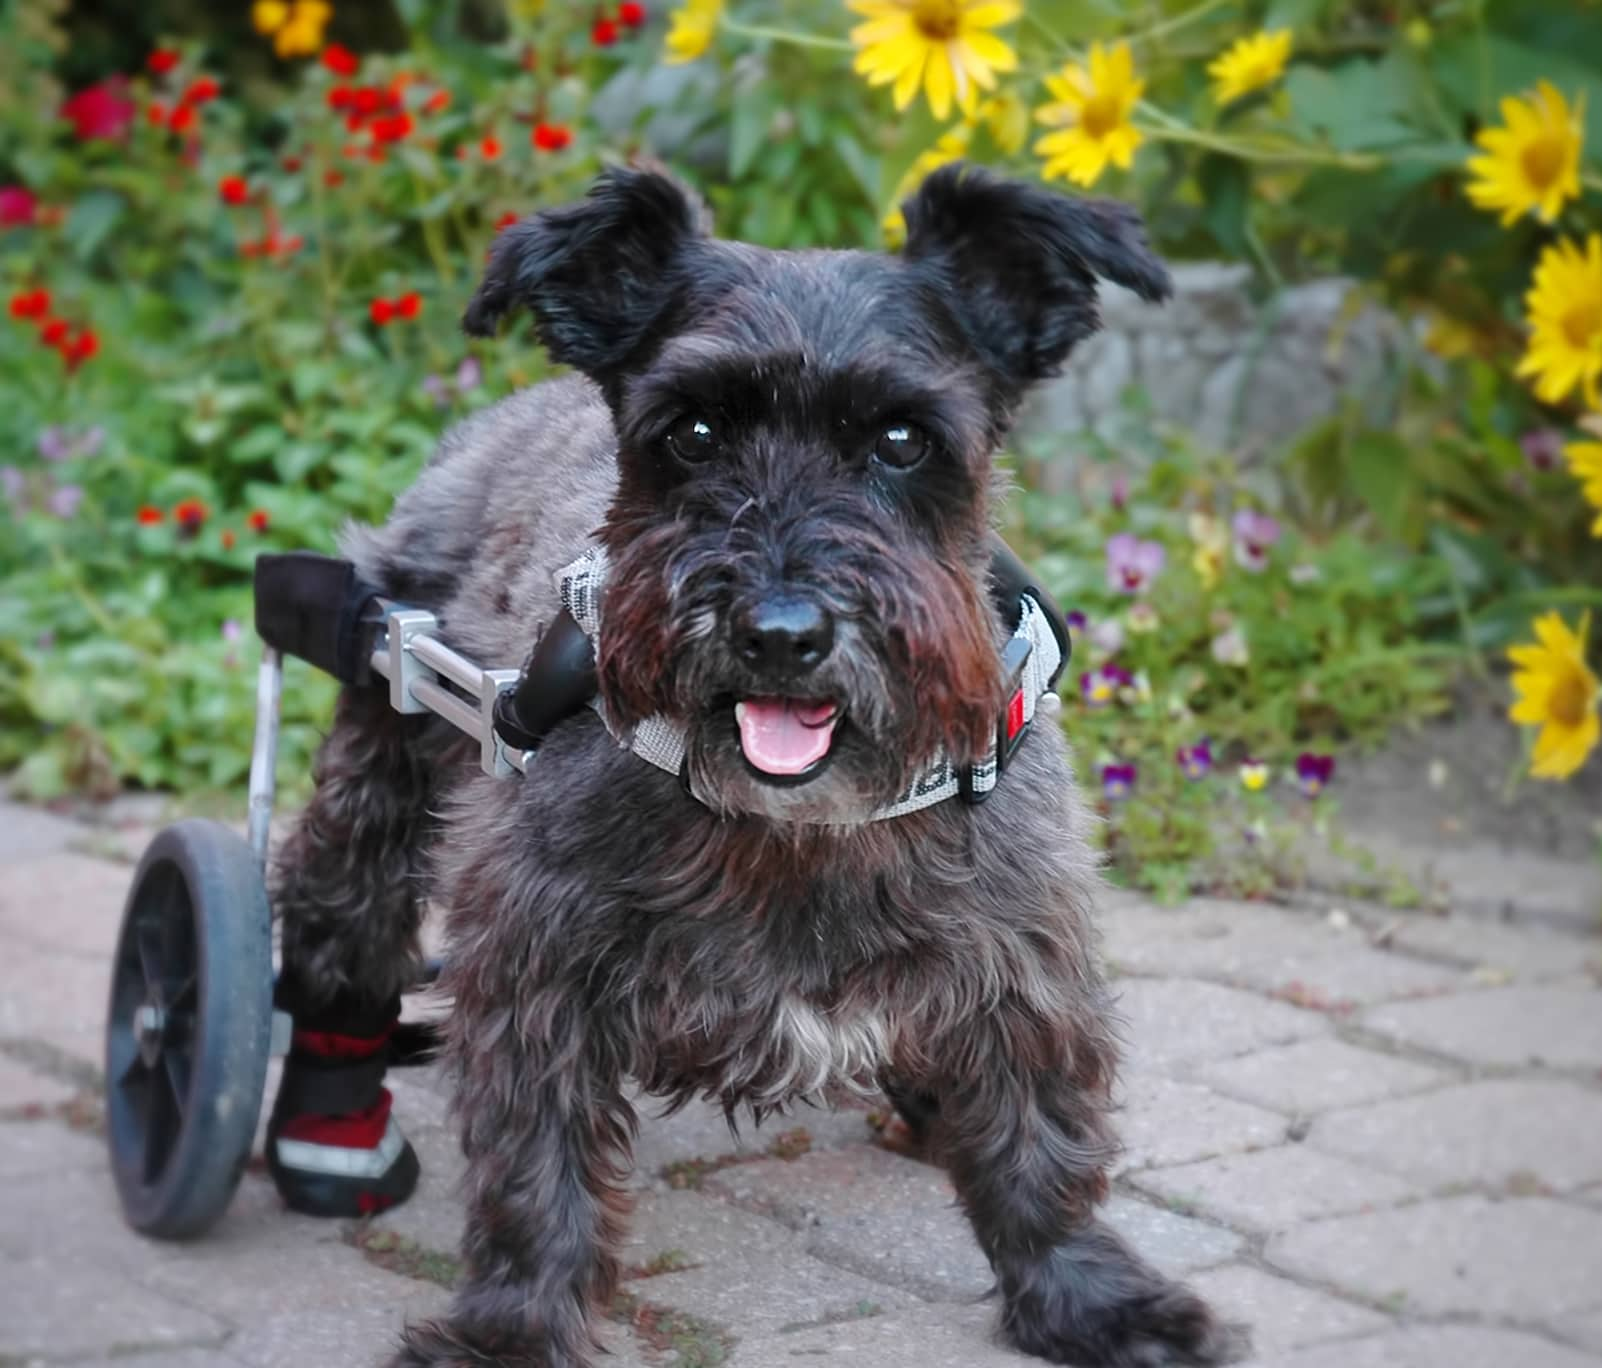 Gray Schnauzer using a dog wheelchair outdoors.